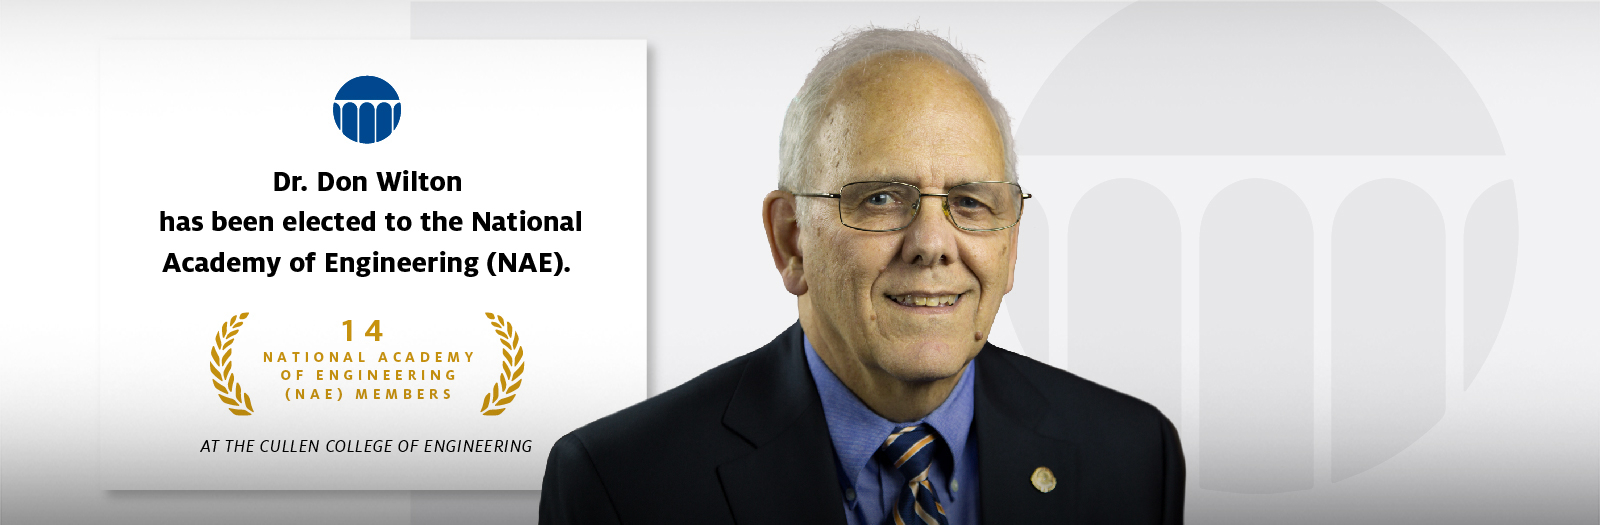 Dr. Don Wilton has been elected to the National Academy of Engineering (NAE)